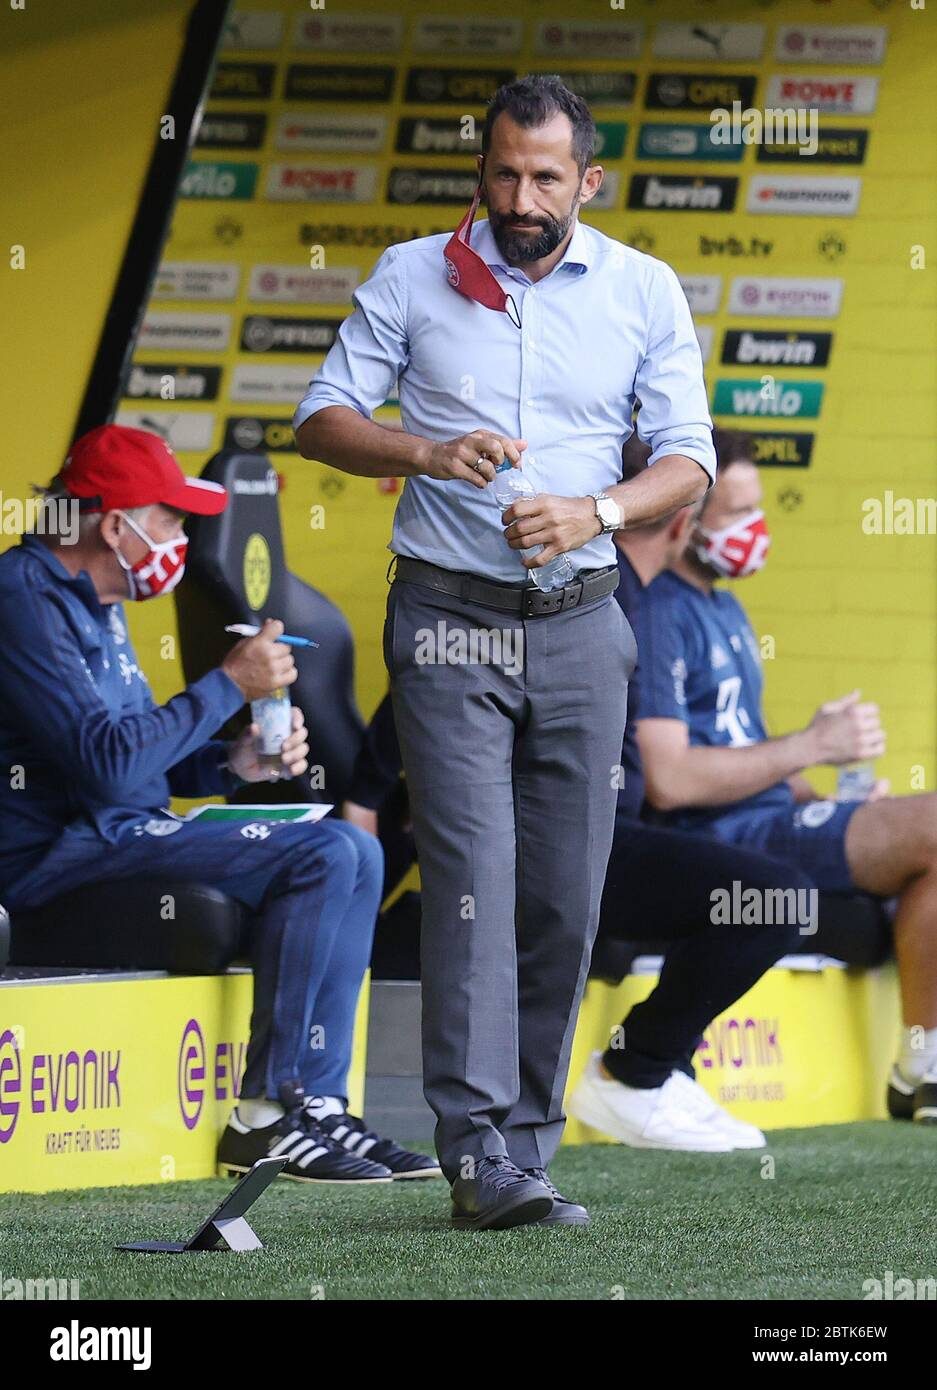 Dortmund, Germany, 26th May 2020  Hasan ( Brazzo ) Salihamidzic, FCB Sport director  in the football match  BORUSSIA DORTMUND - FC BAYERN MUENCHEN in 1. Bundesliga 2019/2020, matchday 28.  © Peter Schatz / Alamy Live News / Pool via Jürgen Fromme / firosportfoto   - DFL REGULATIONS PROHIBIT ANY USE OF PHOTOGRAPHS as IMAGE SEQUENCES and/or QUASI-VIDEO -   National and international News-Agencies OUT  Editorial Use ONLY Stock Photo